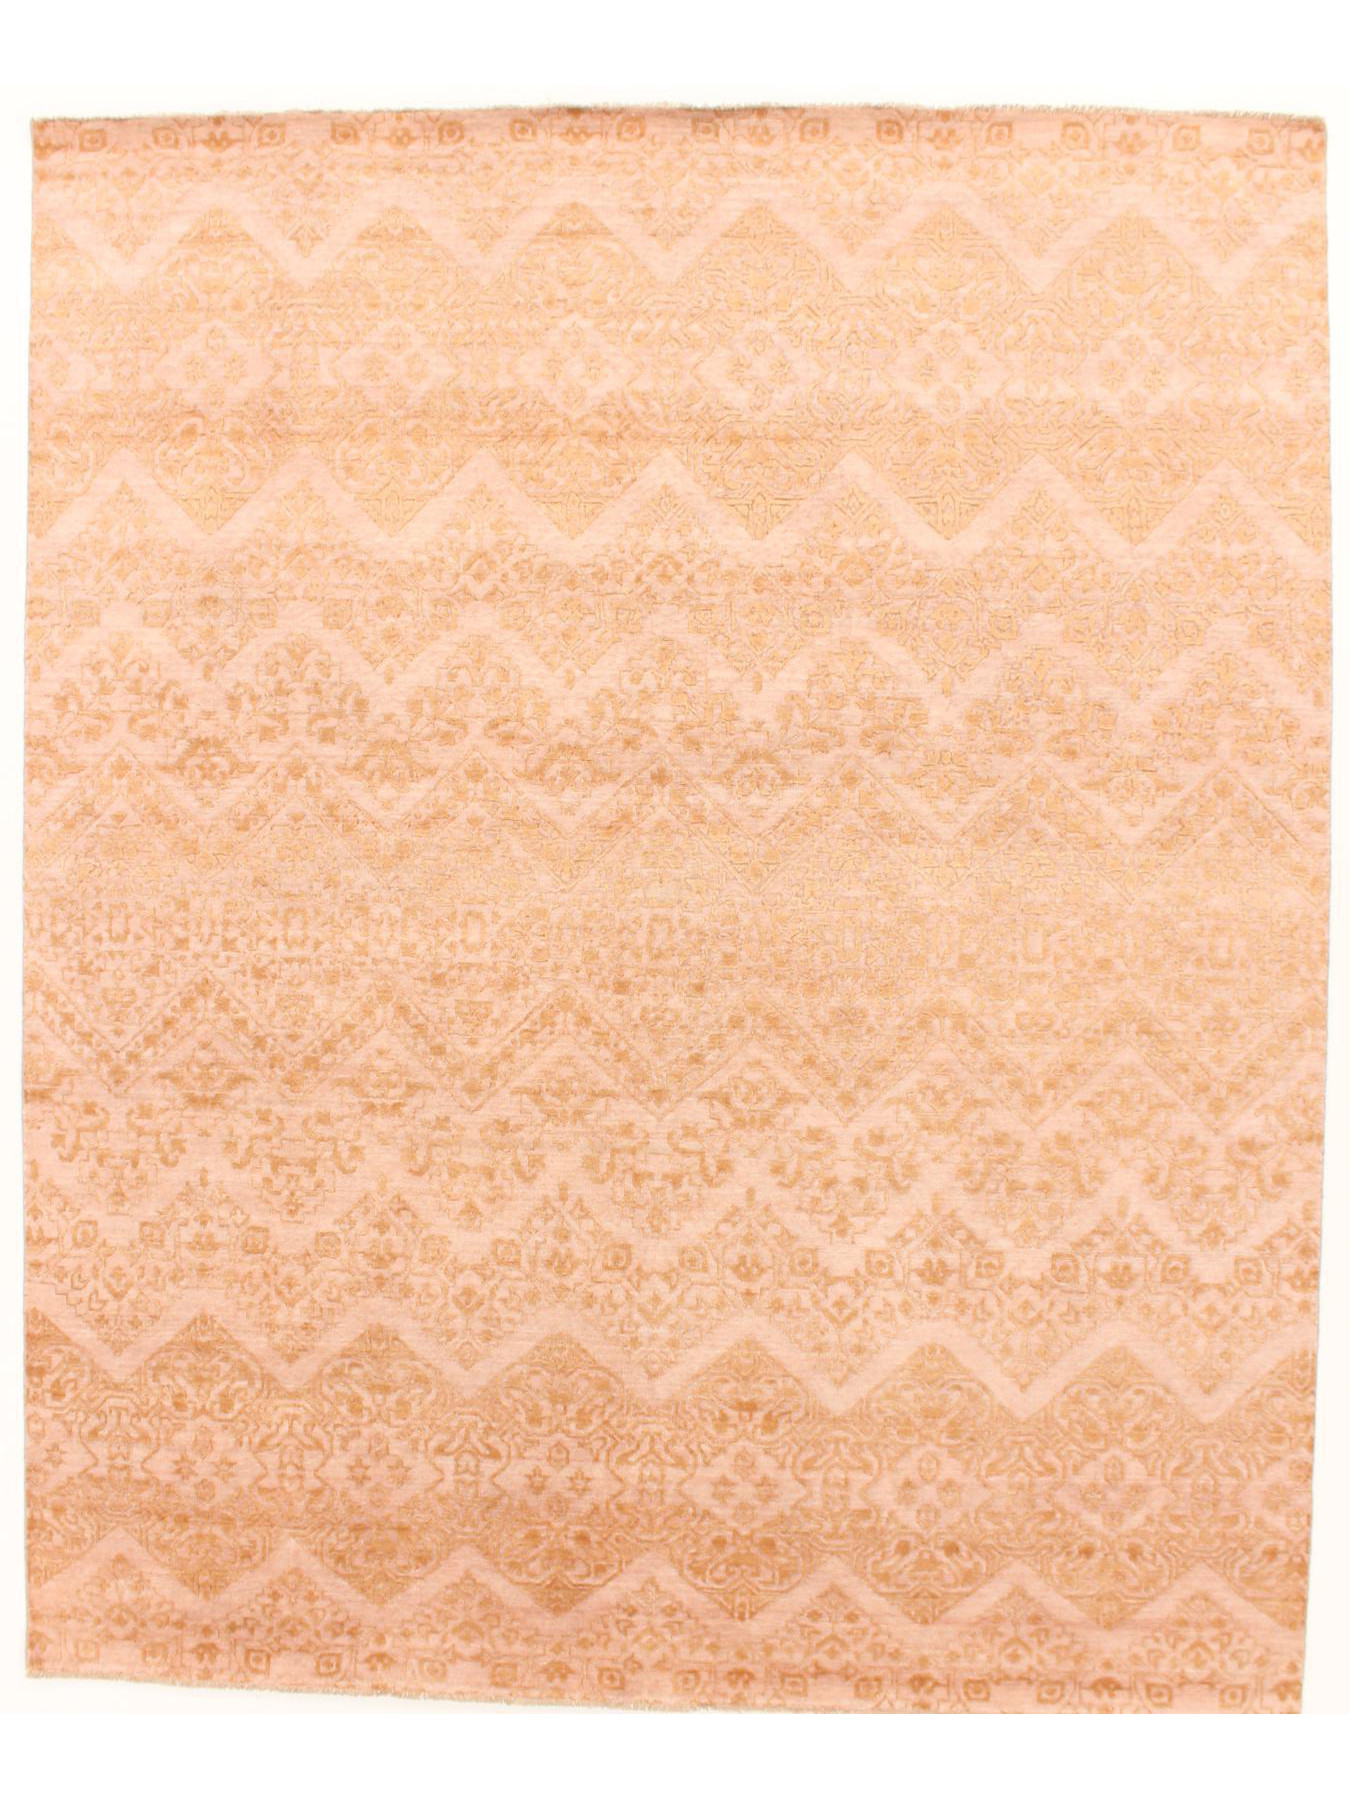 Luxury tapijten - Damask-GE-447 HB-110/B-81/Pink Outlet